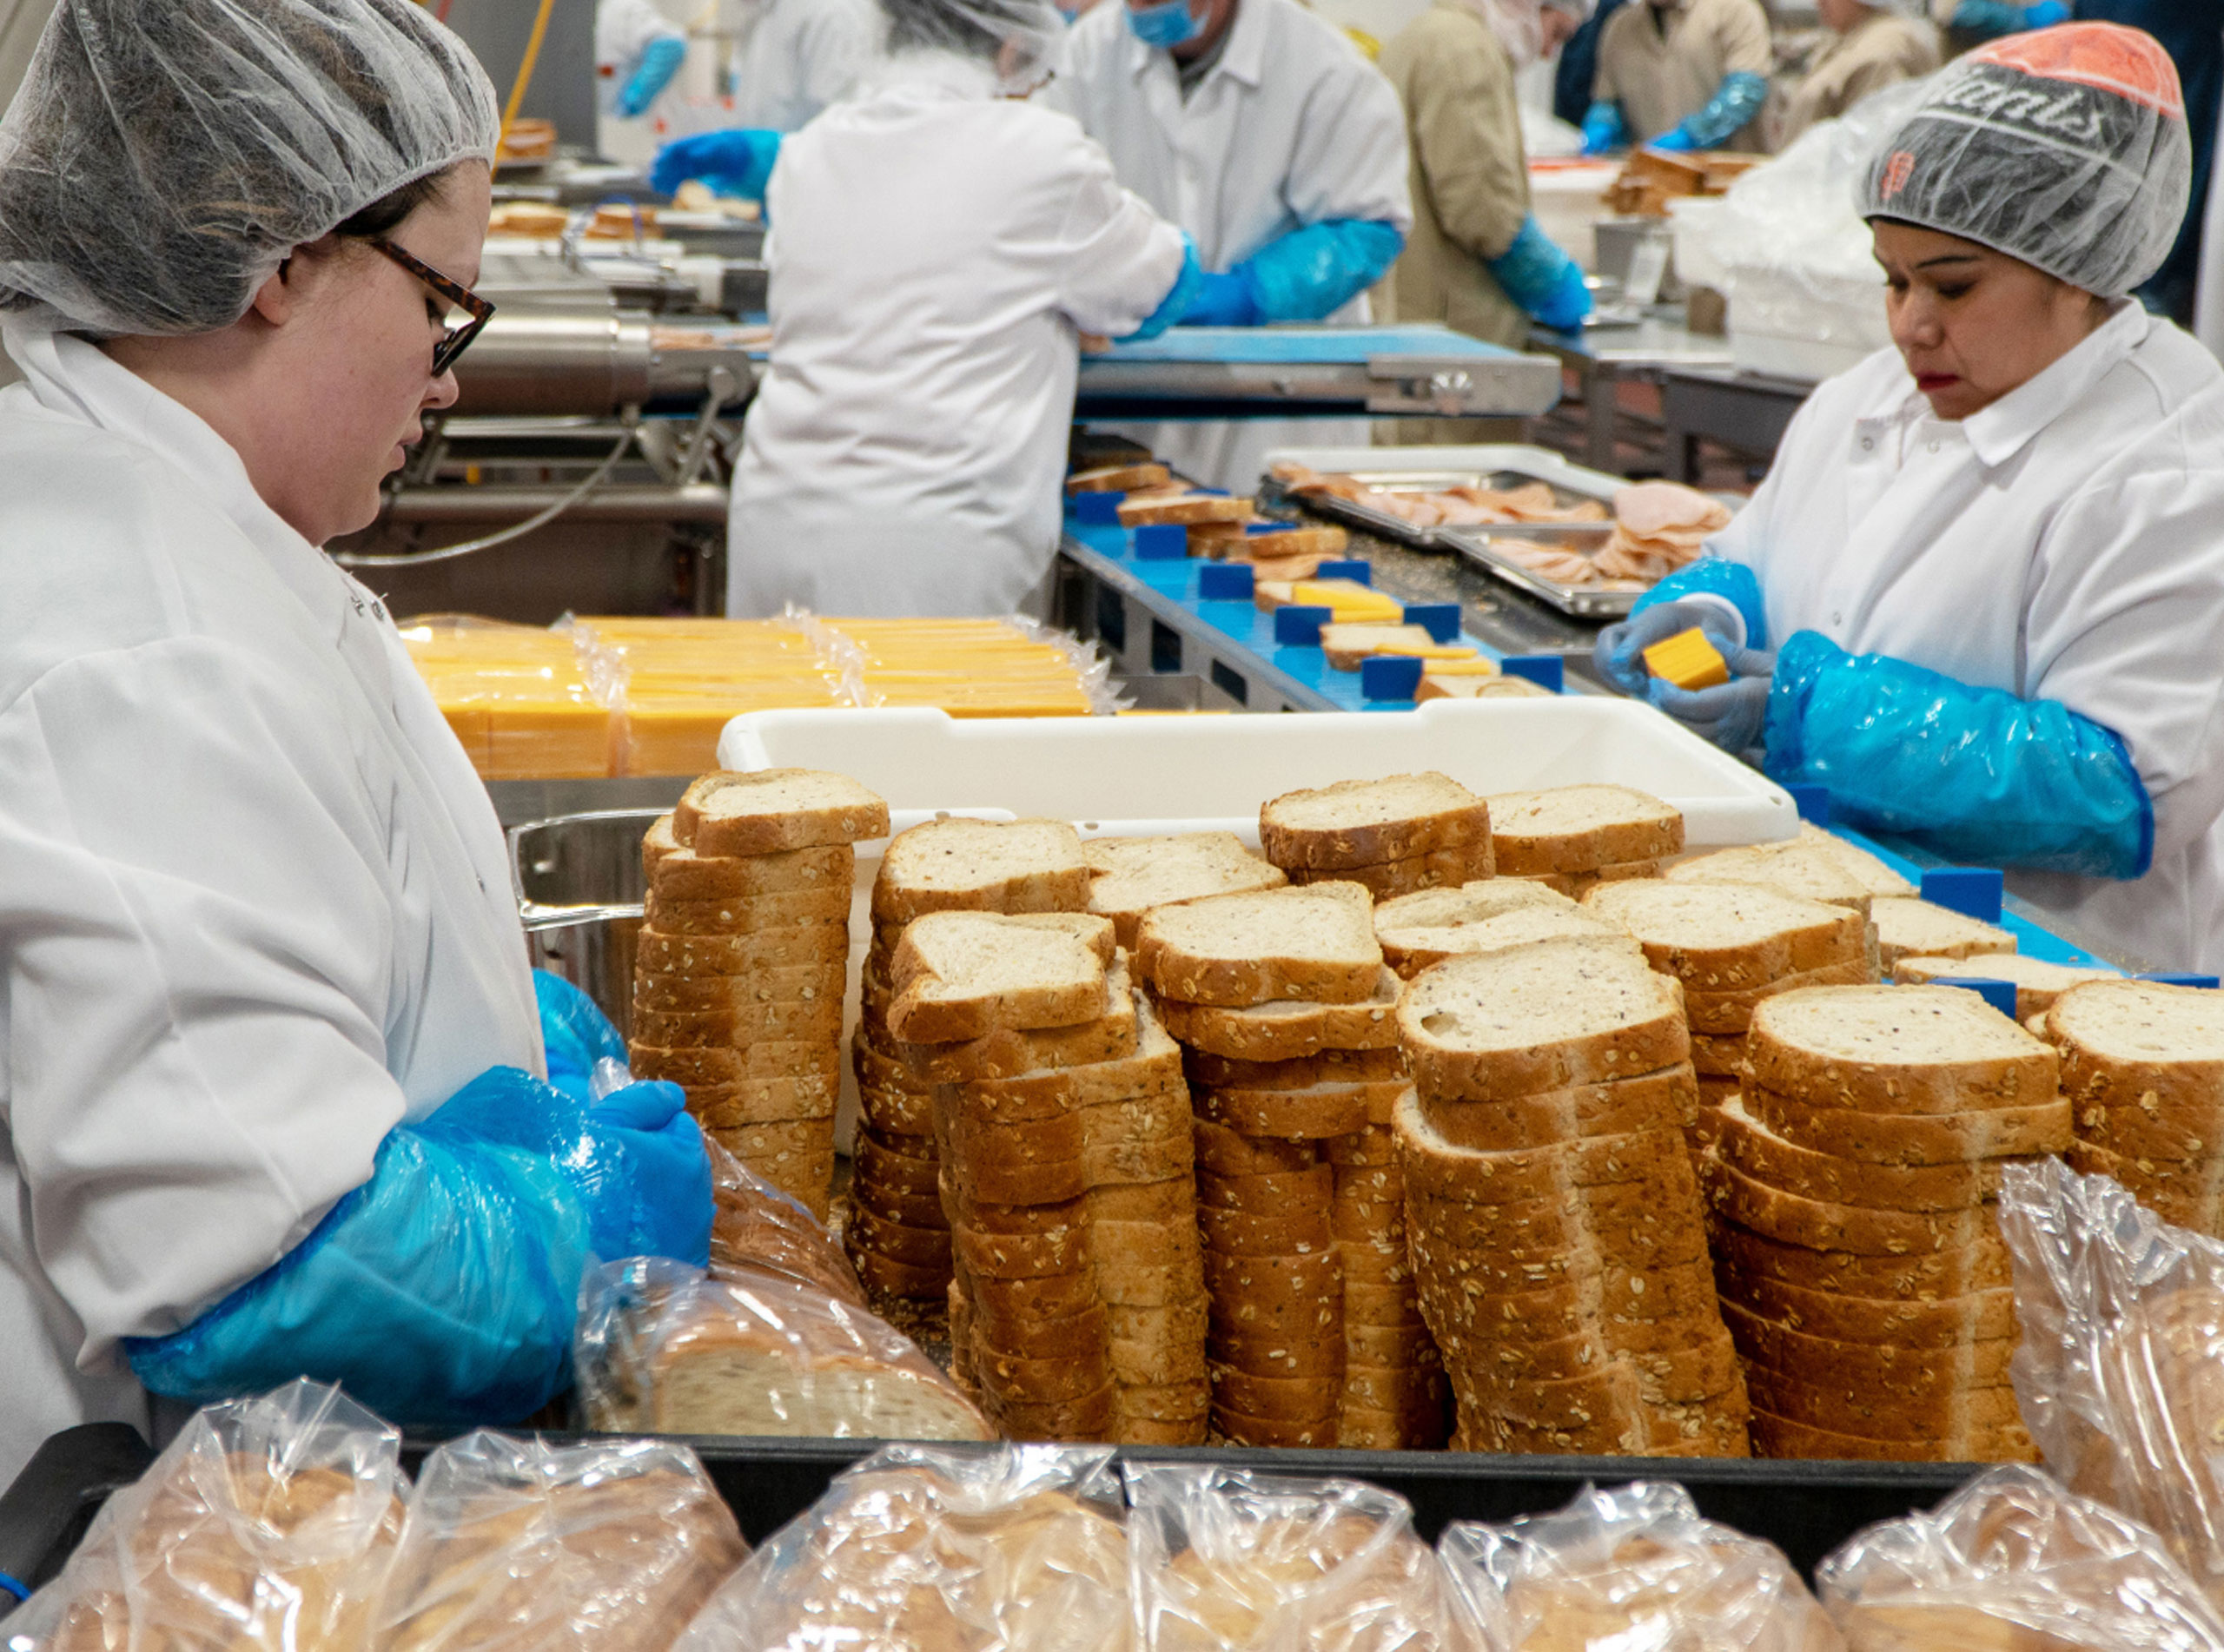 Workers assembling sandwiches